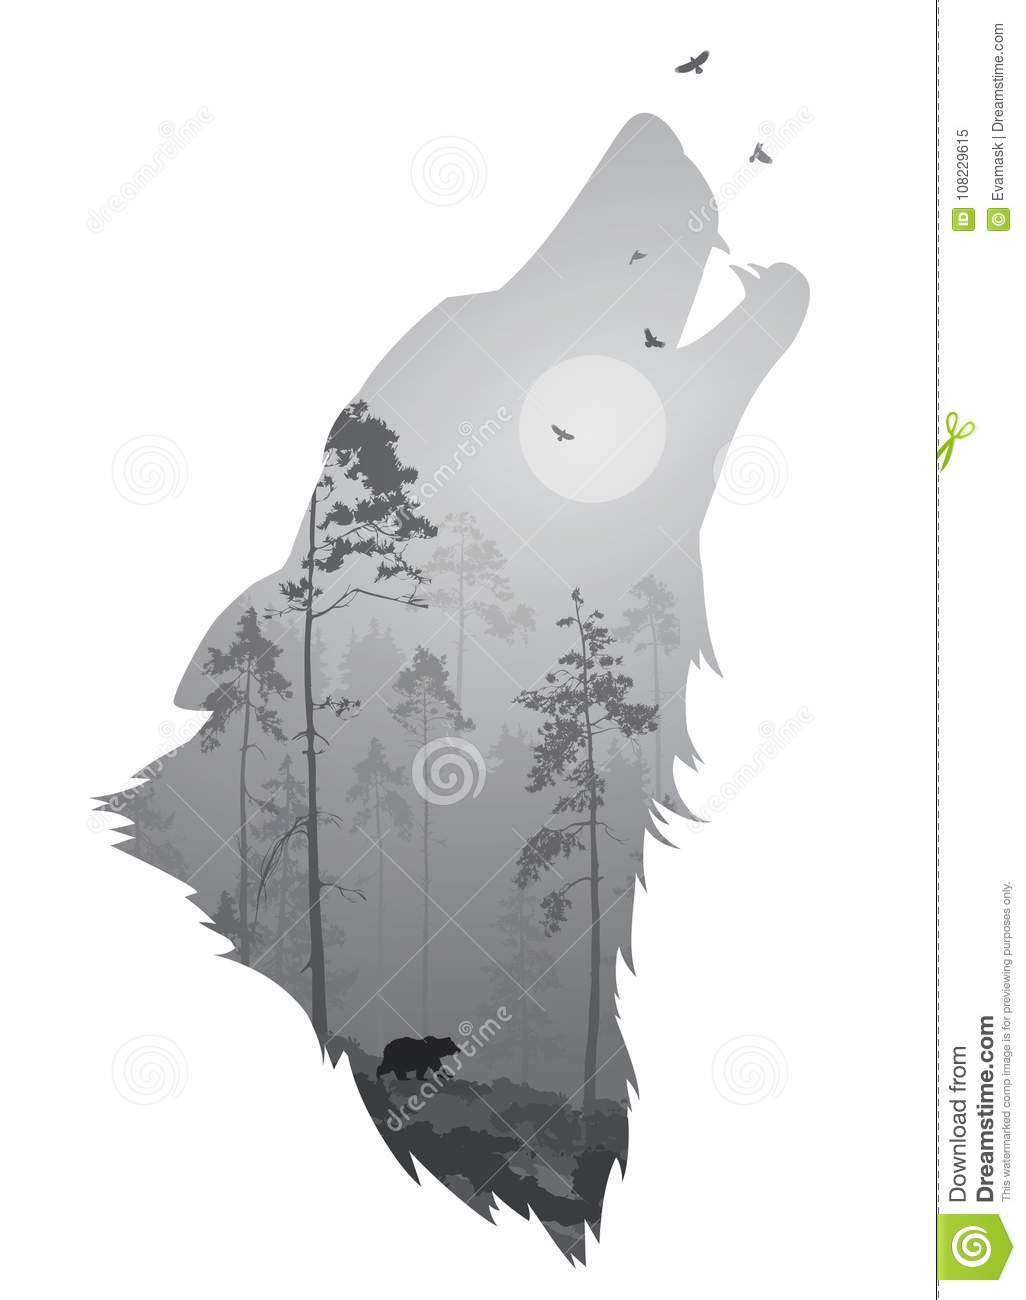 Wolf Head Stock Vector  Illustration Of Tree, Branches